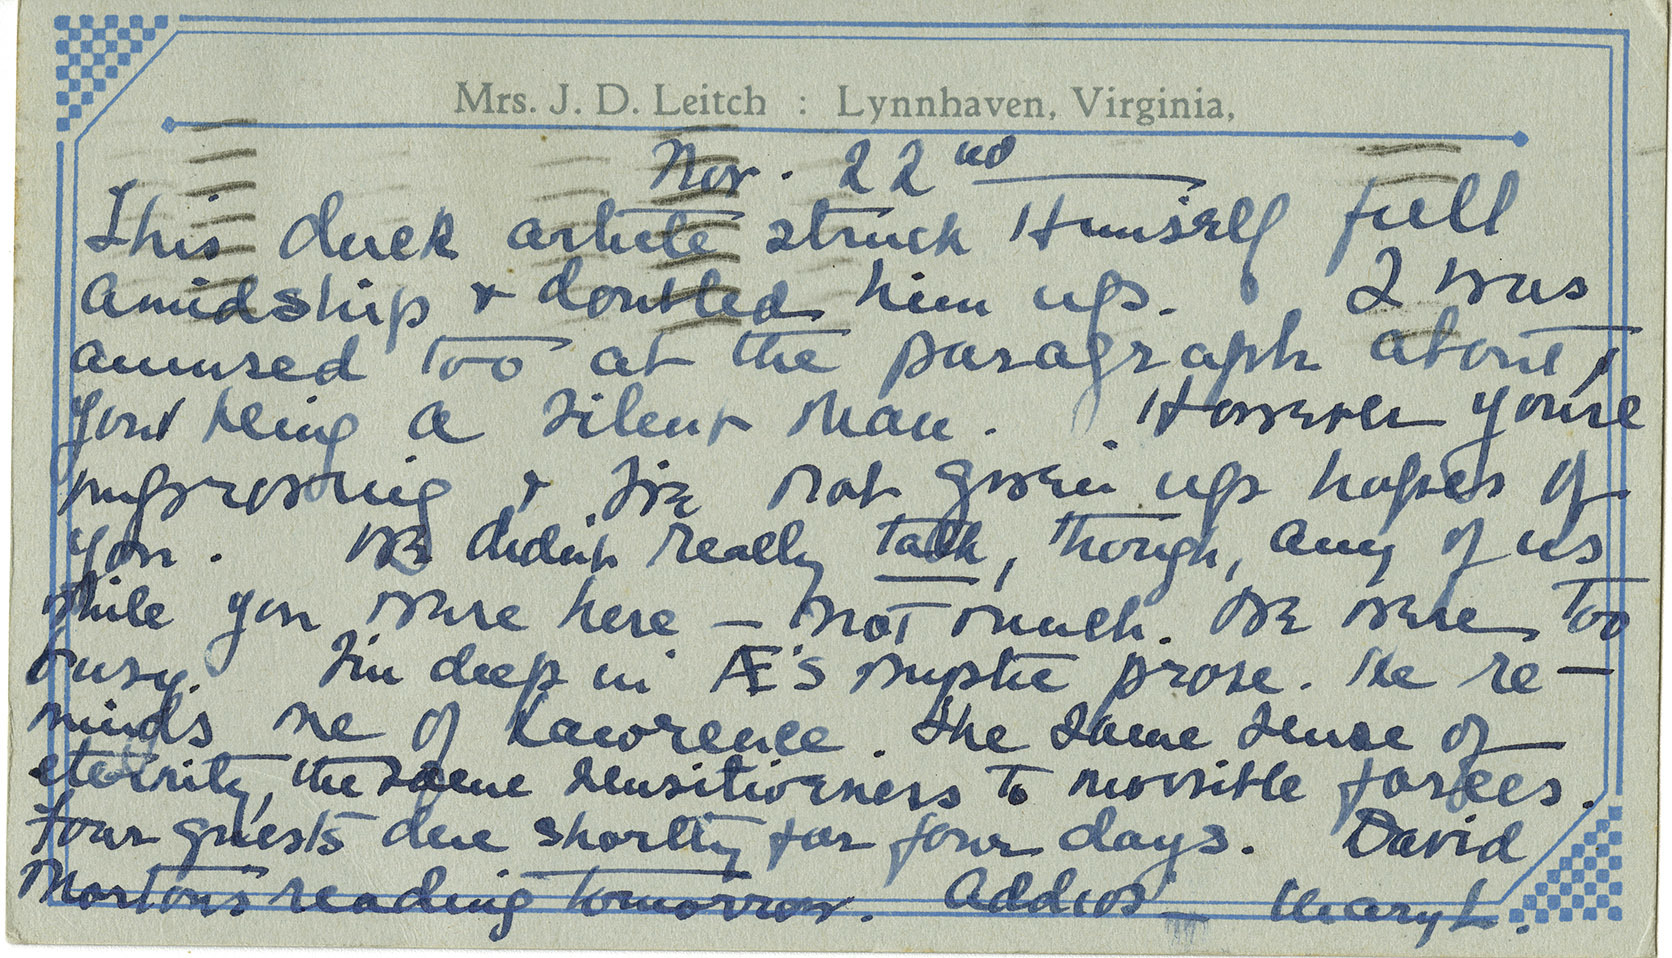 Ms2017_001_LeitchMary_B1F4_LeitchtoLankes_1941_1122a.jpg